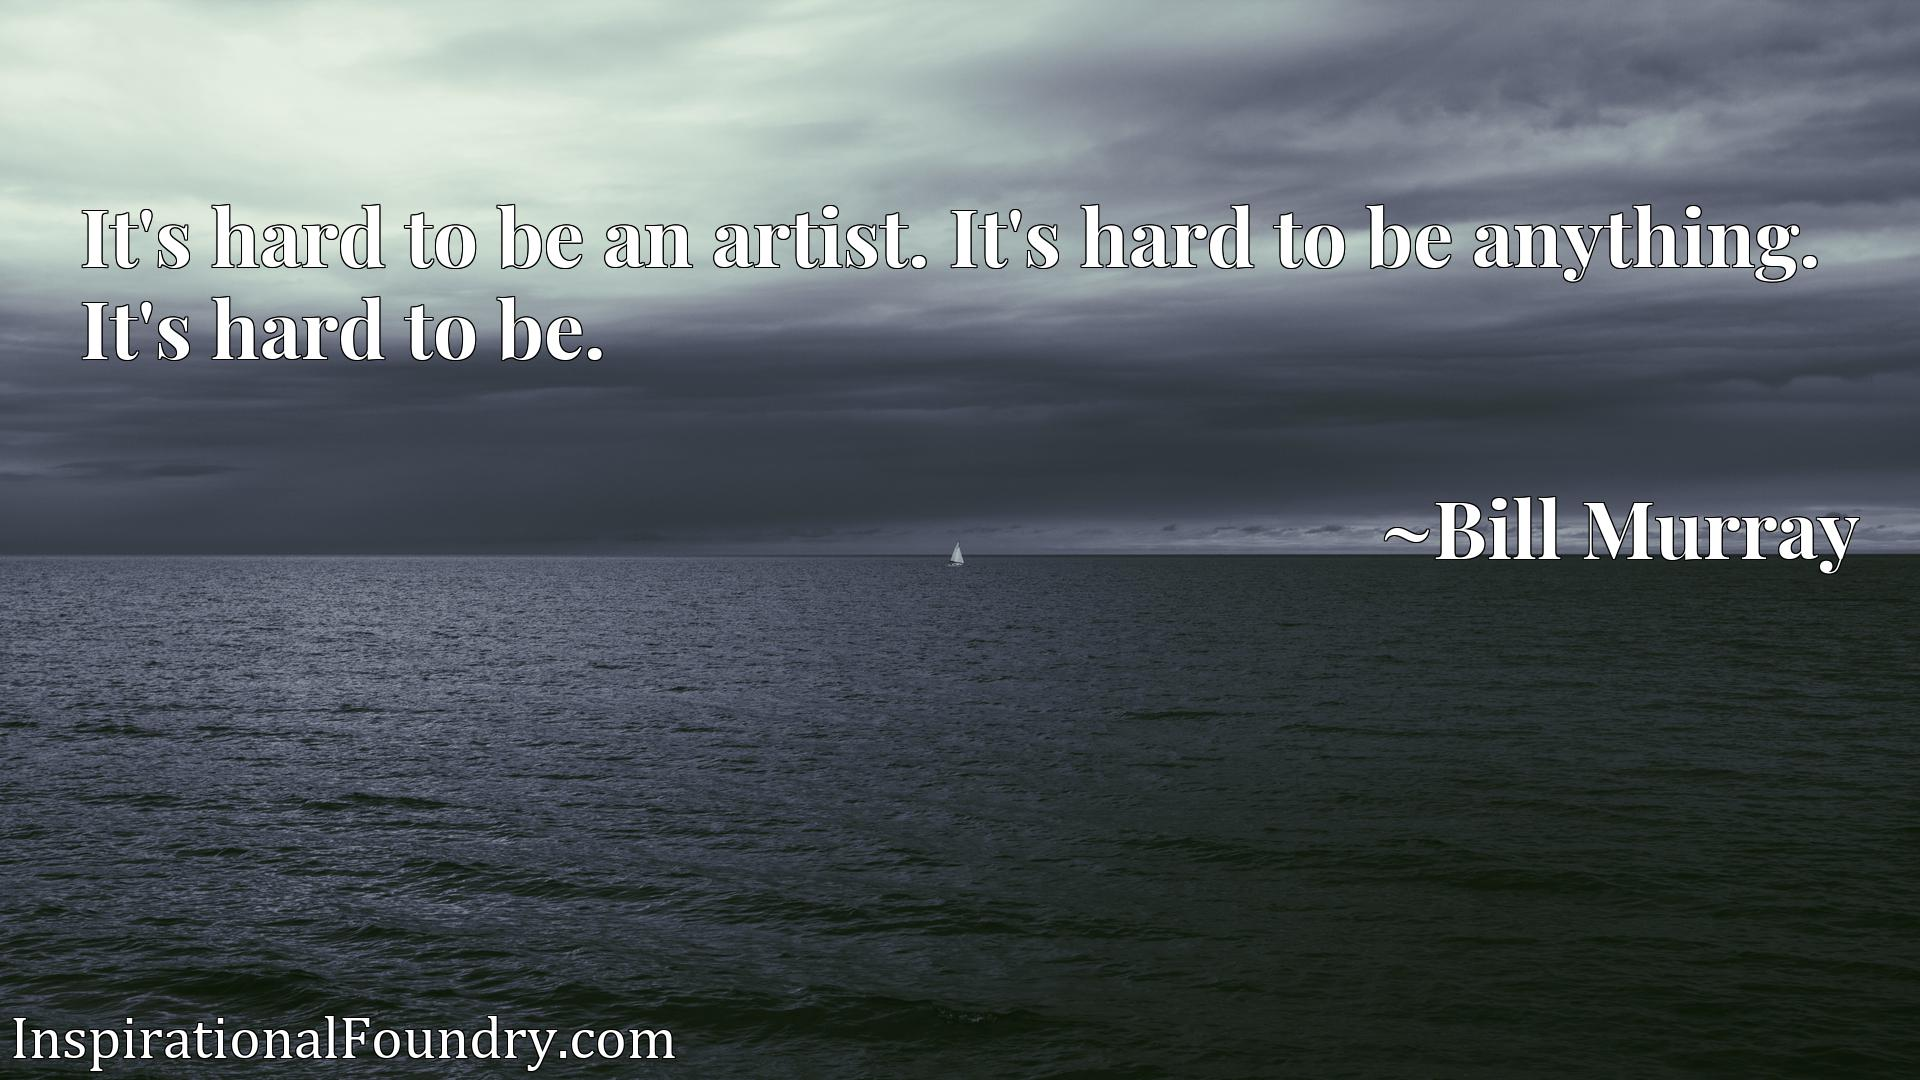 It's hard to be an artist. It's hard to be anything. It's hard to be.